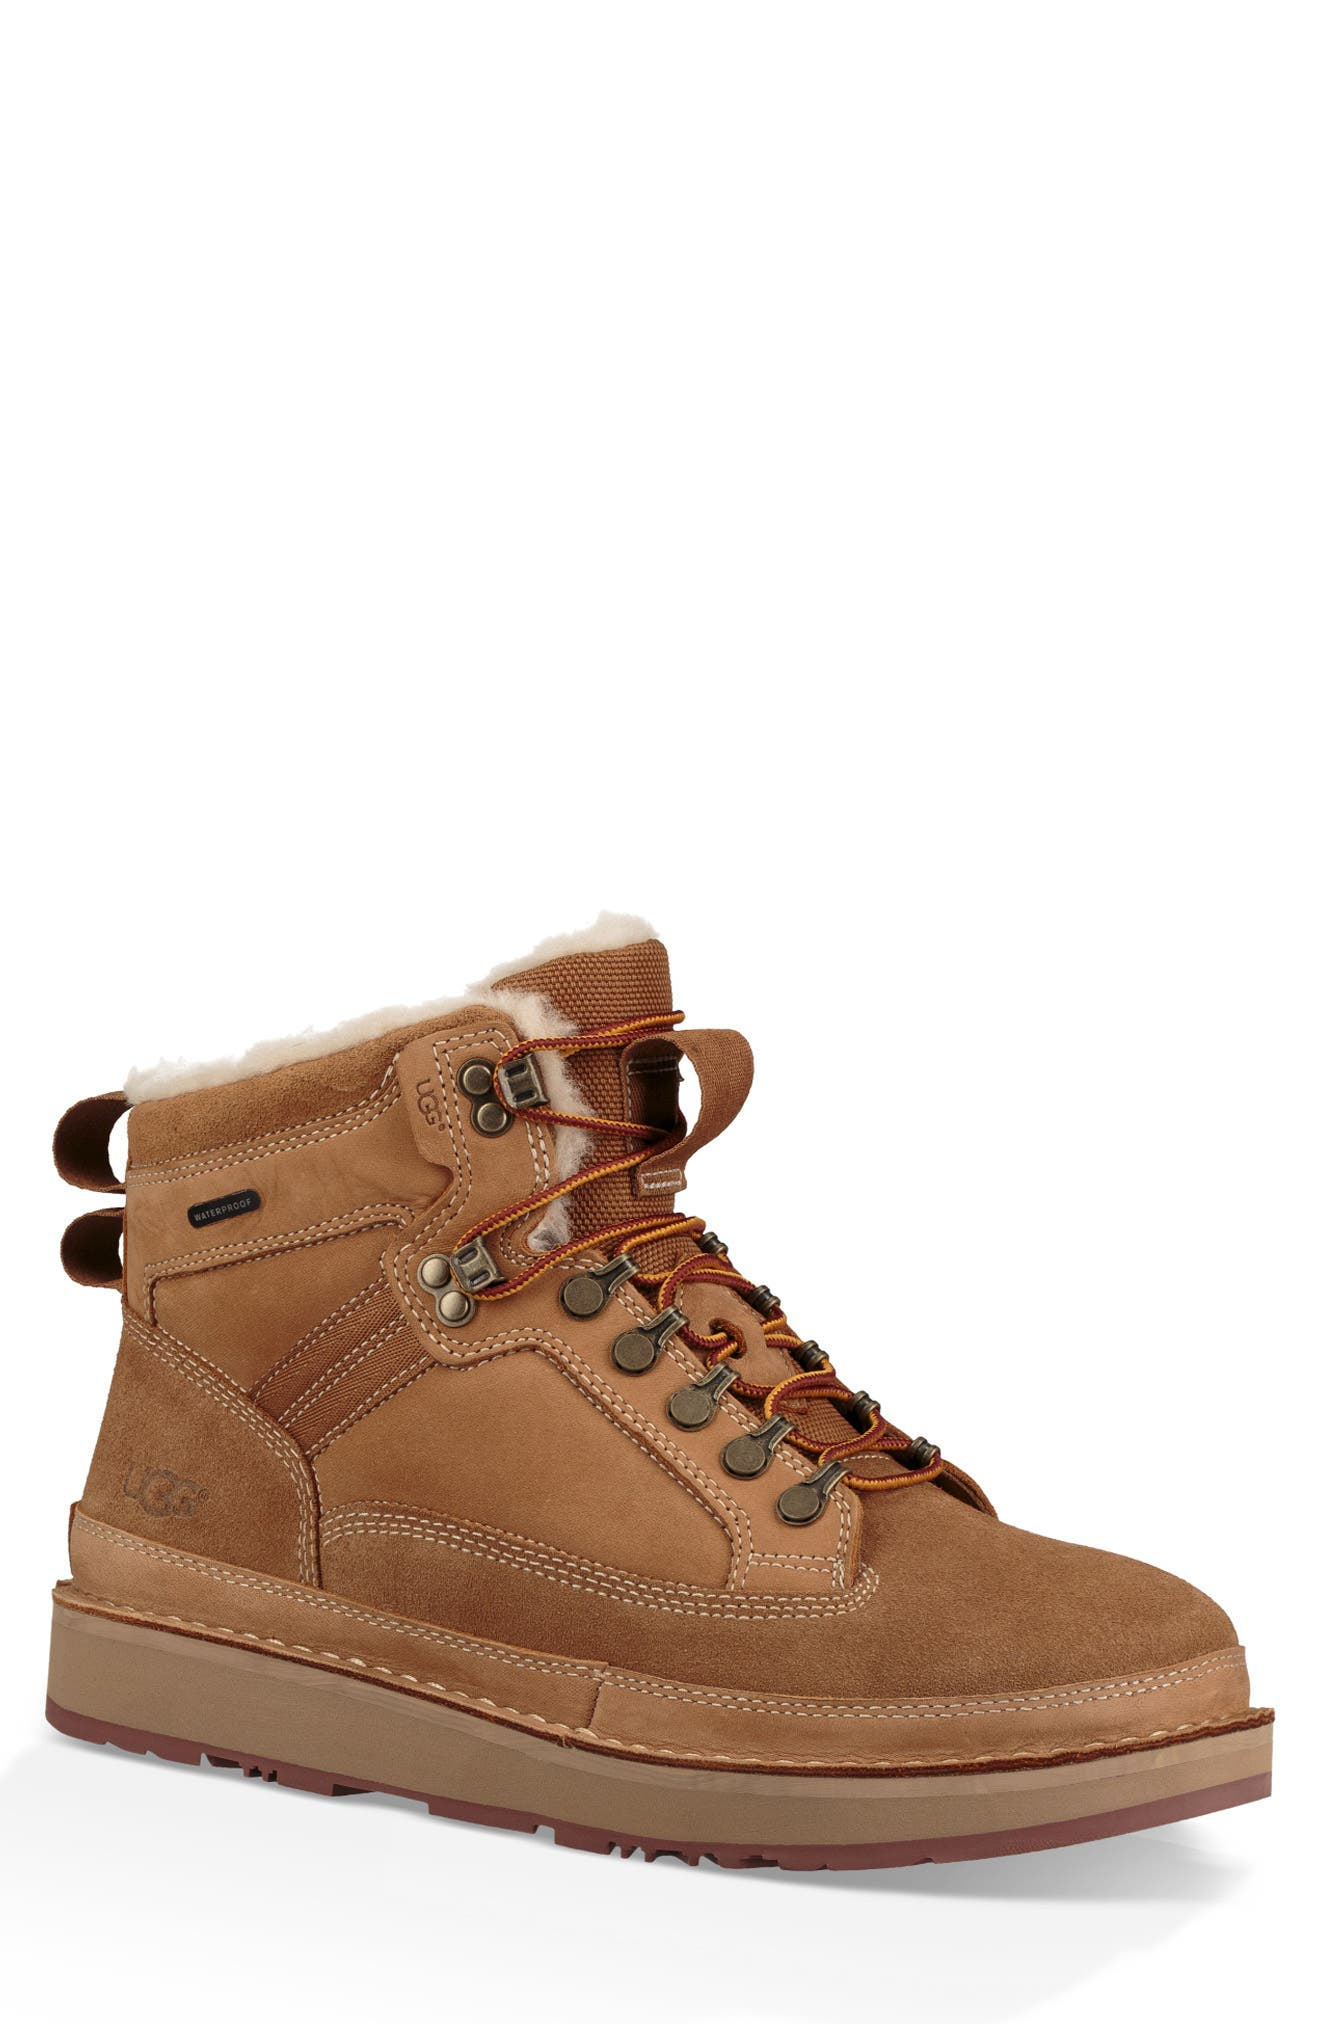 Avalanche Hiker Suede & Shearling Boots in Chestnut